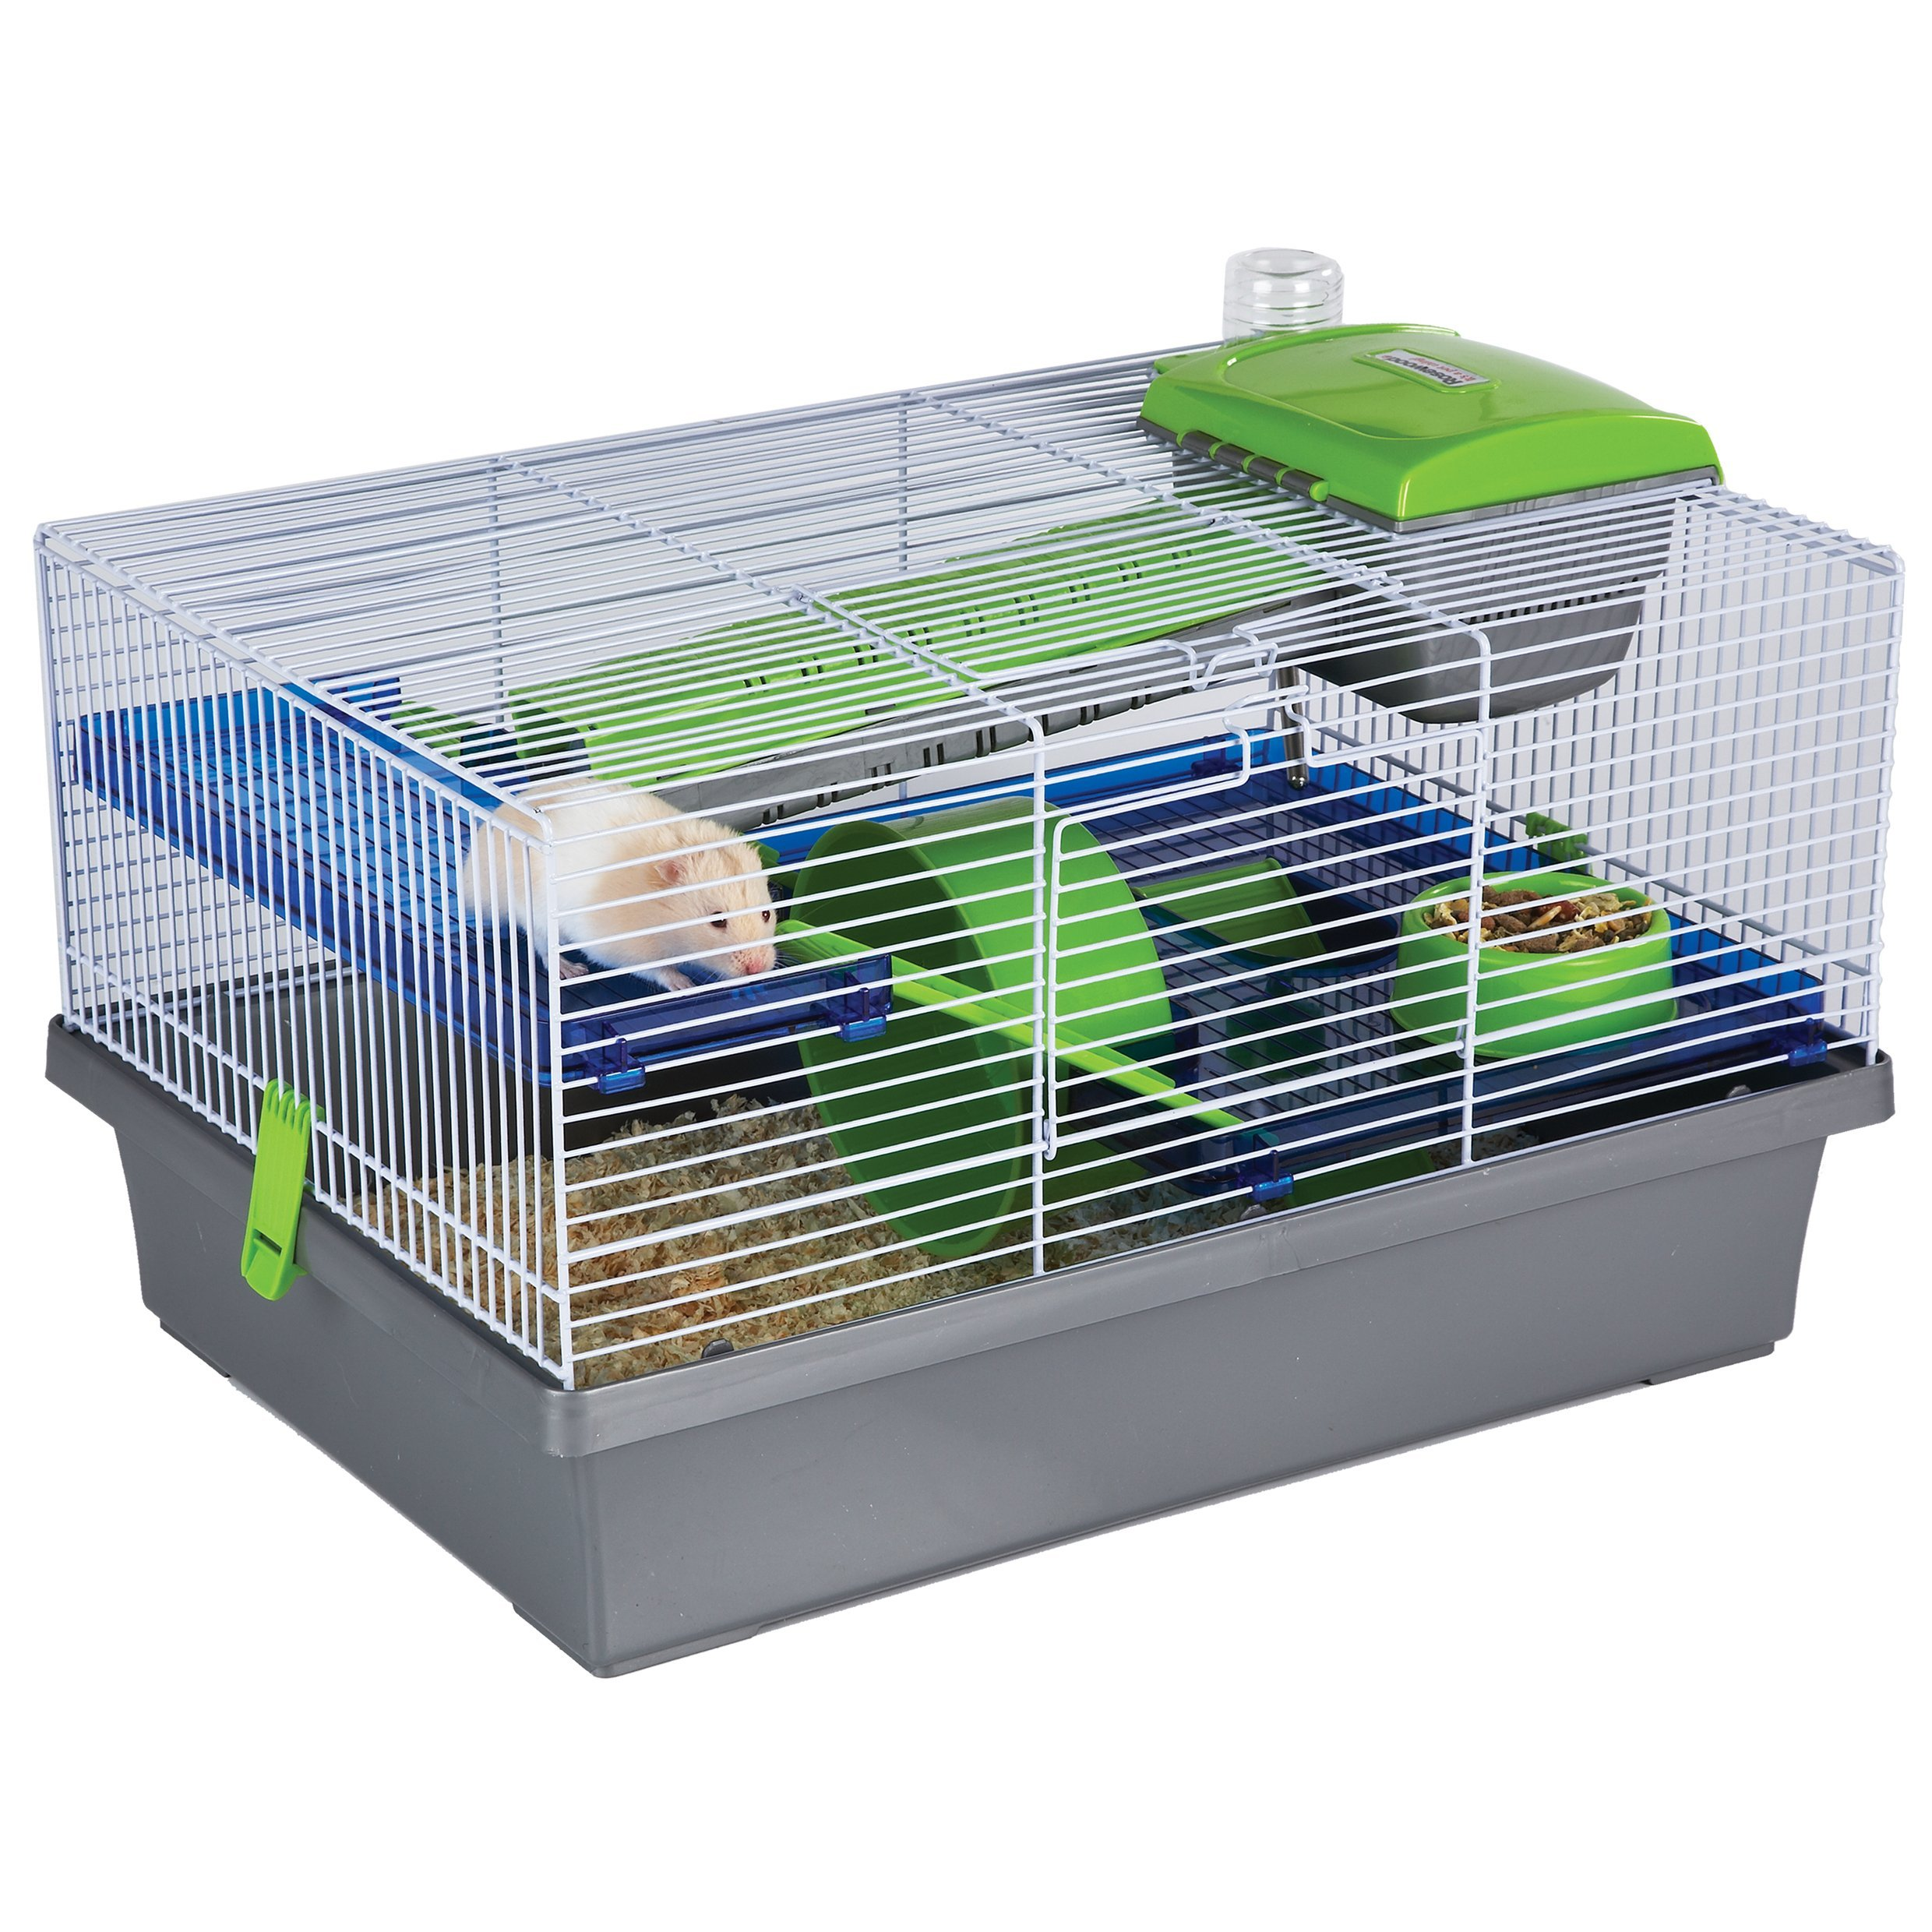 Pico Silver & Green - Hamster & Small Animal Home/Cage by Rosewood Pet